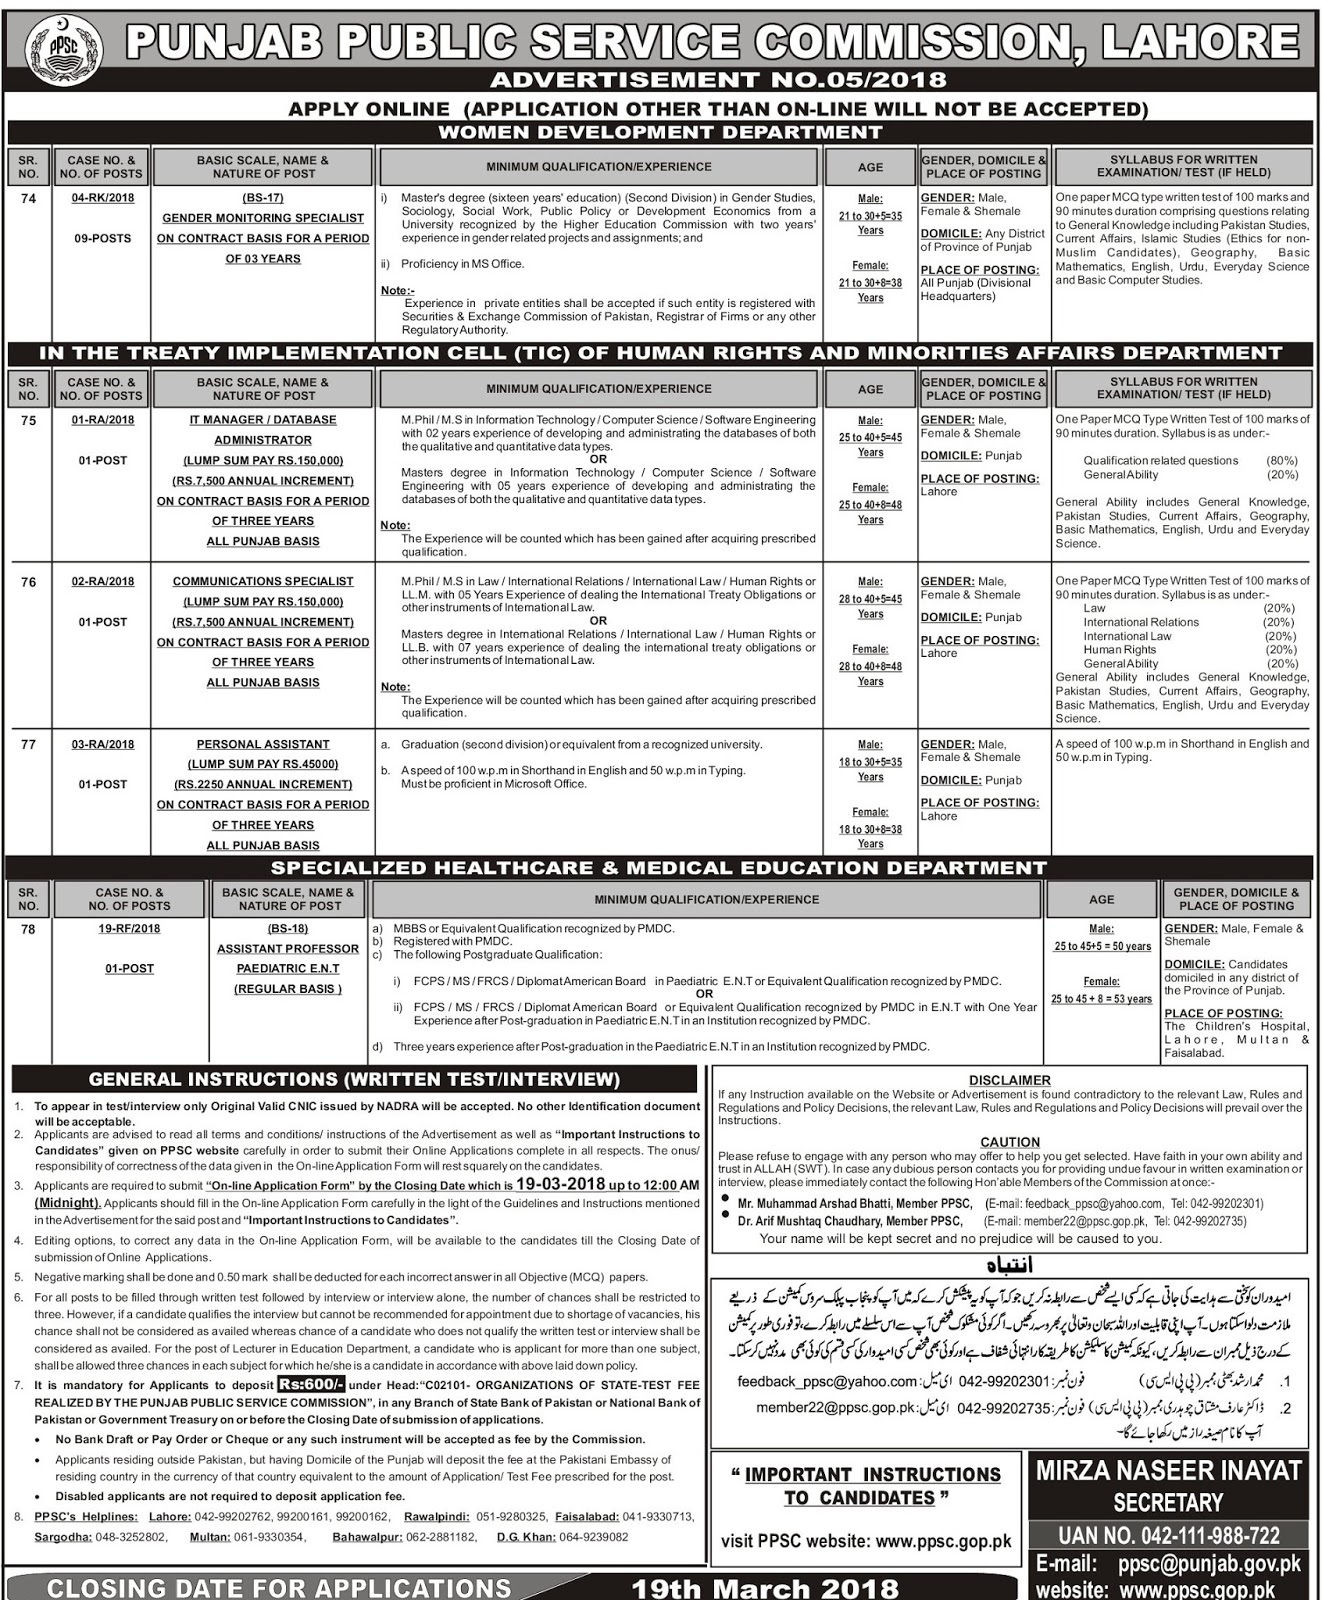 PPSC Jobs Advertisement No 5 2018